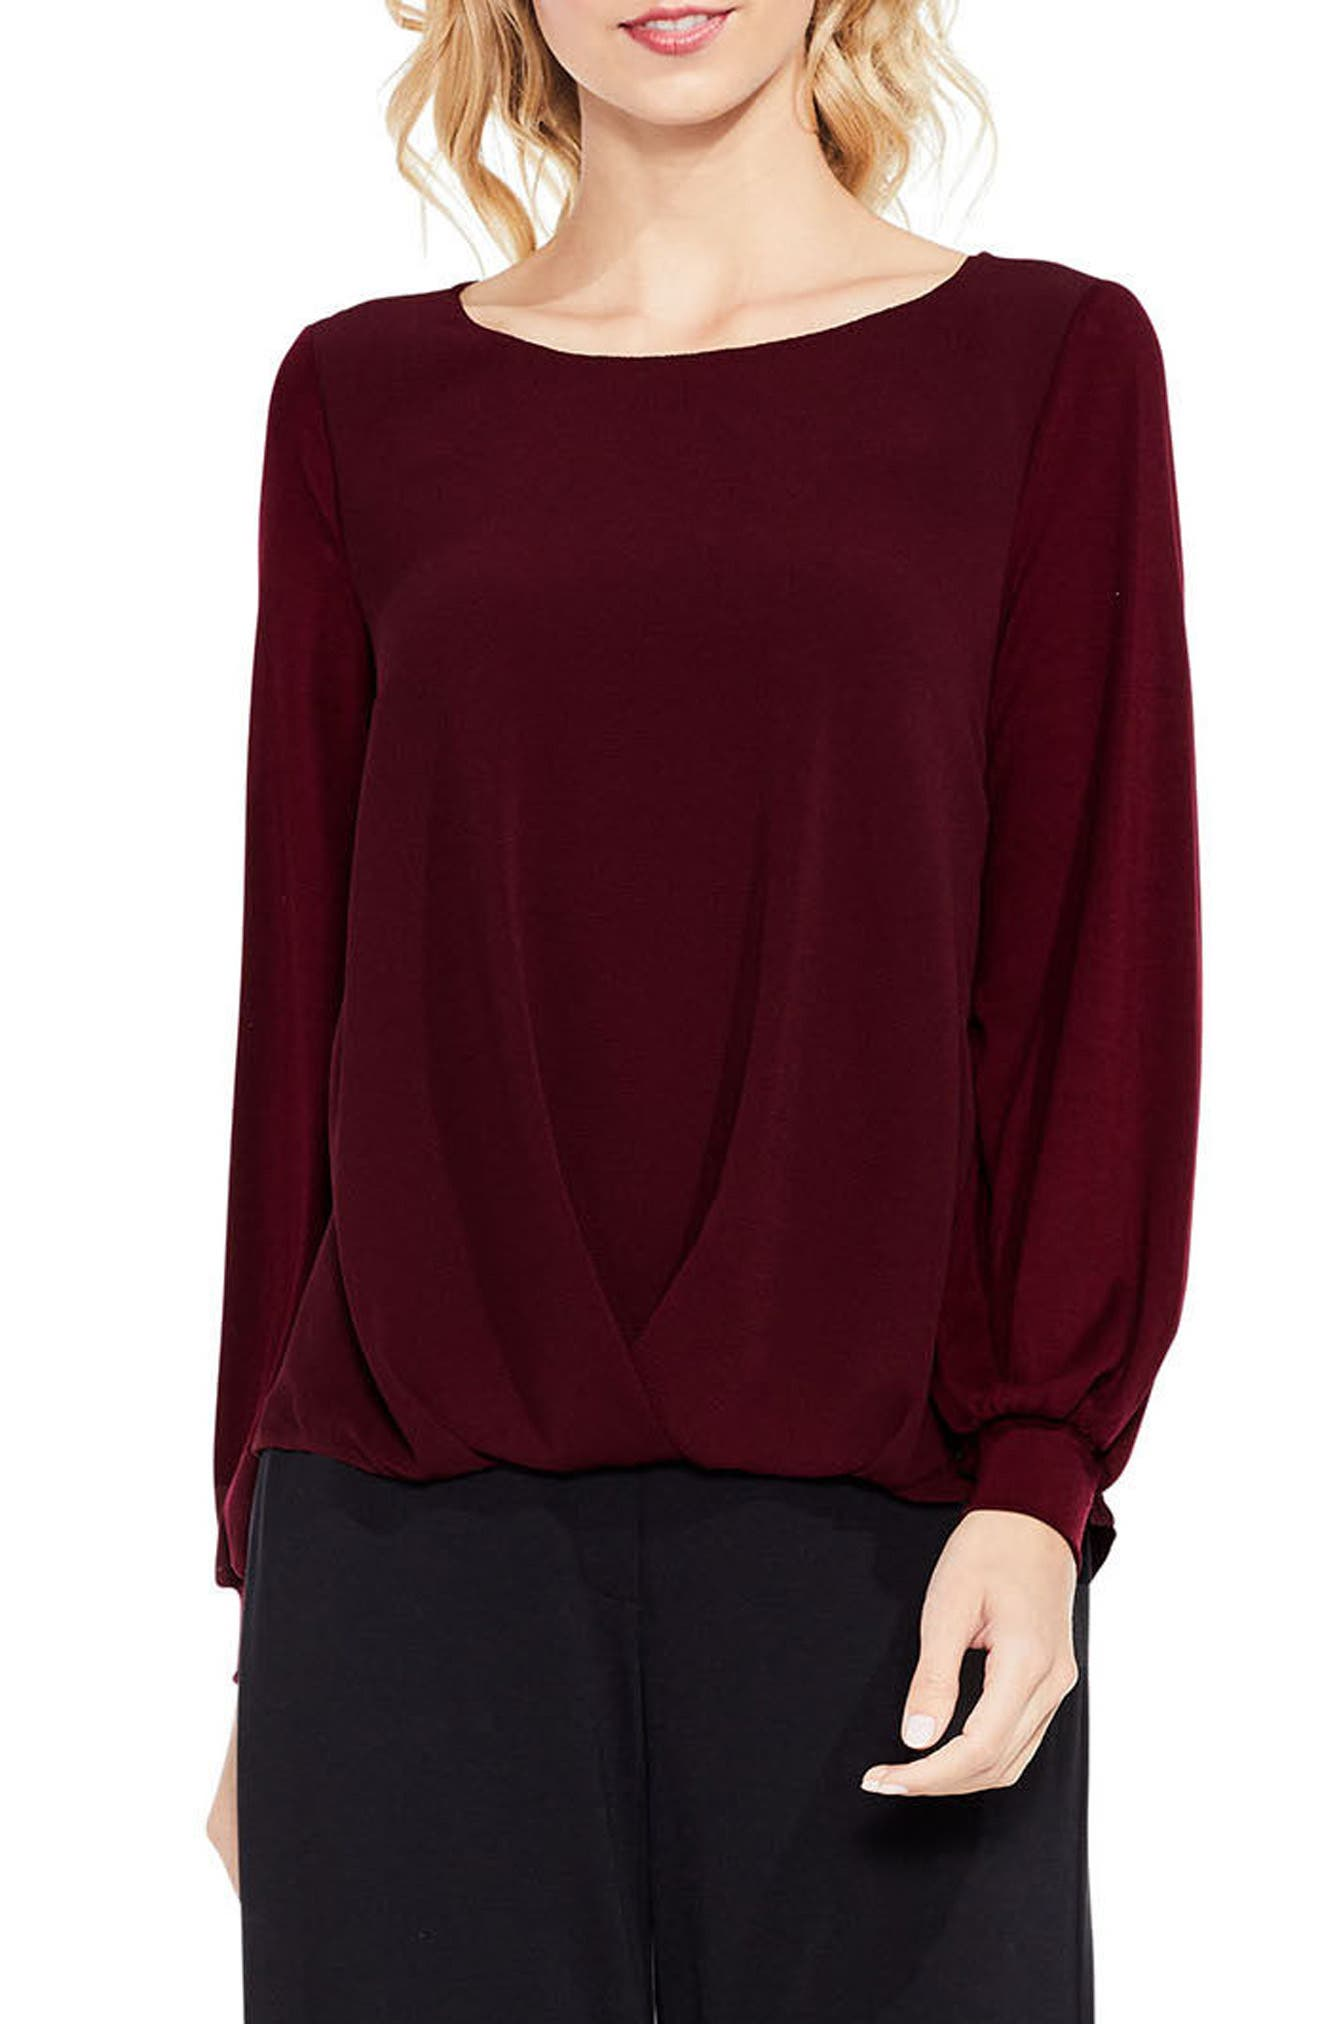 Long Sleeve Foldover Mix Media Blouse,                             Main thumbnail 1, color,                             930